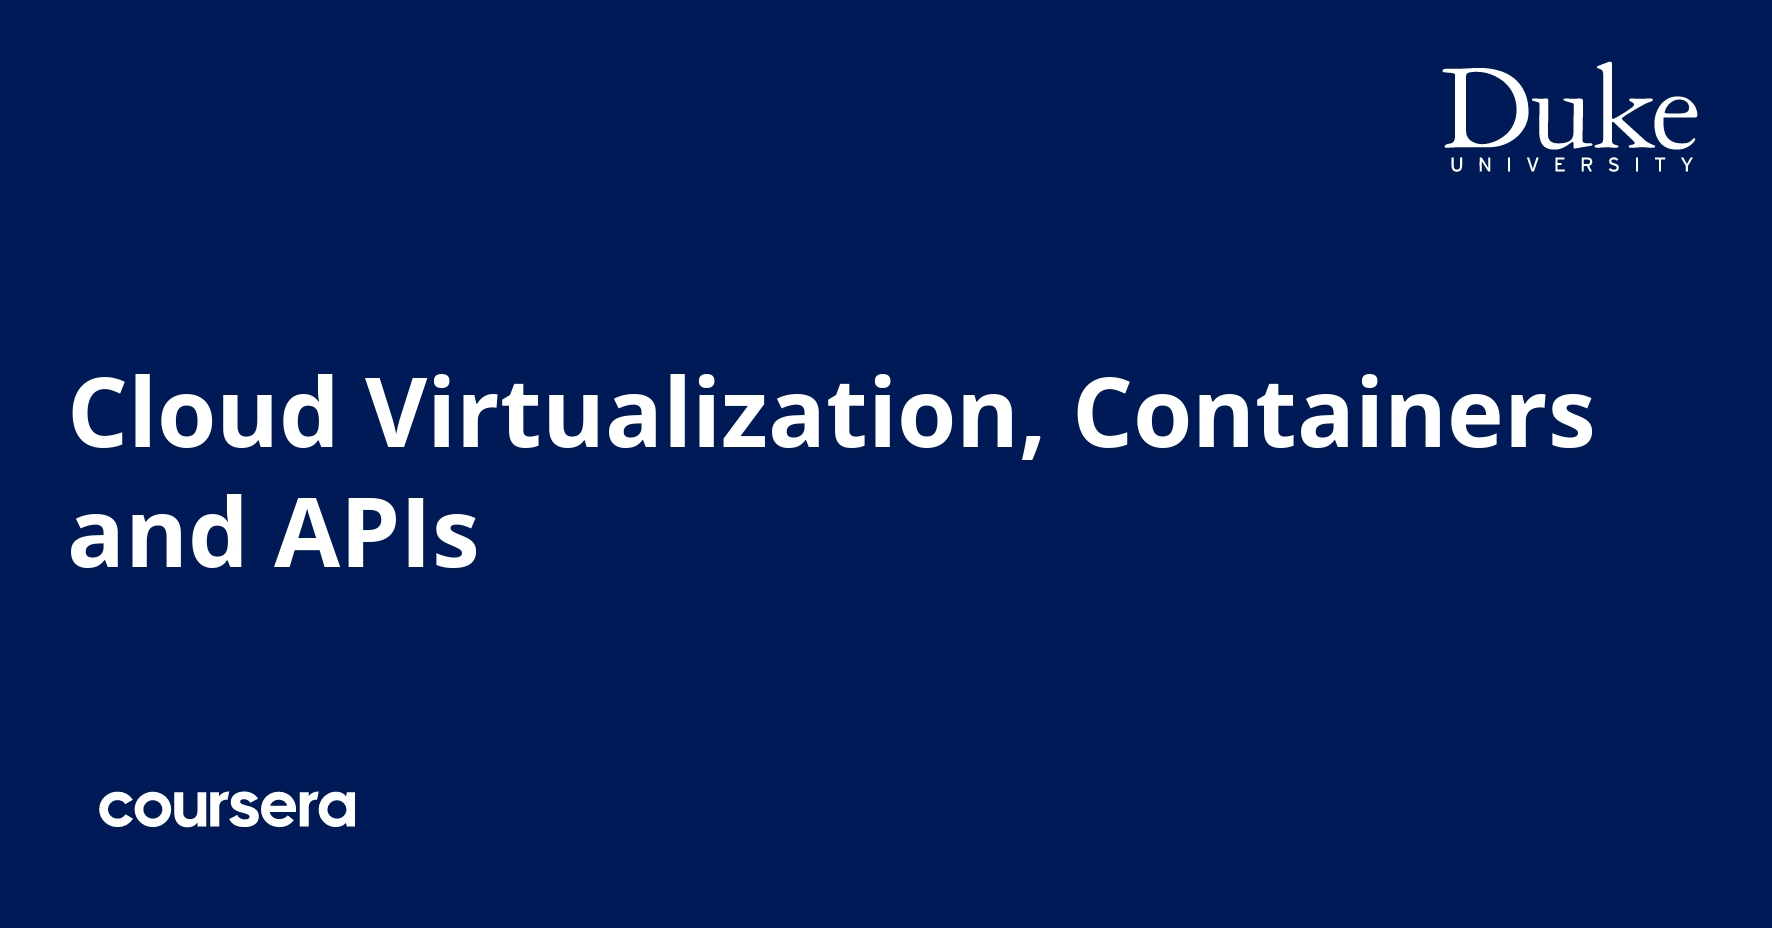 Cloud Virtualization, Containers and APIs